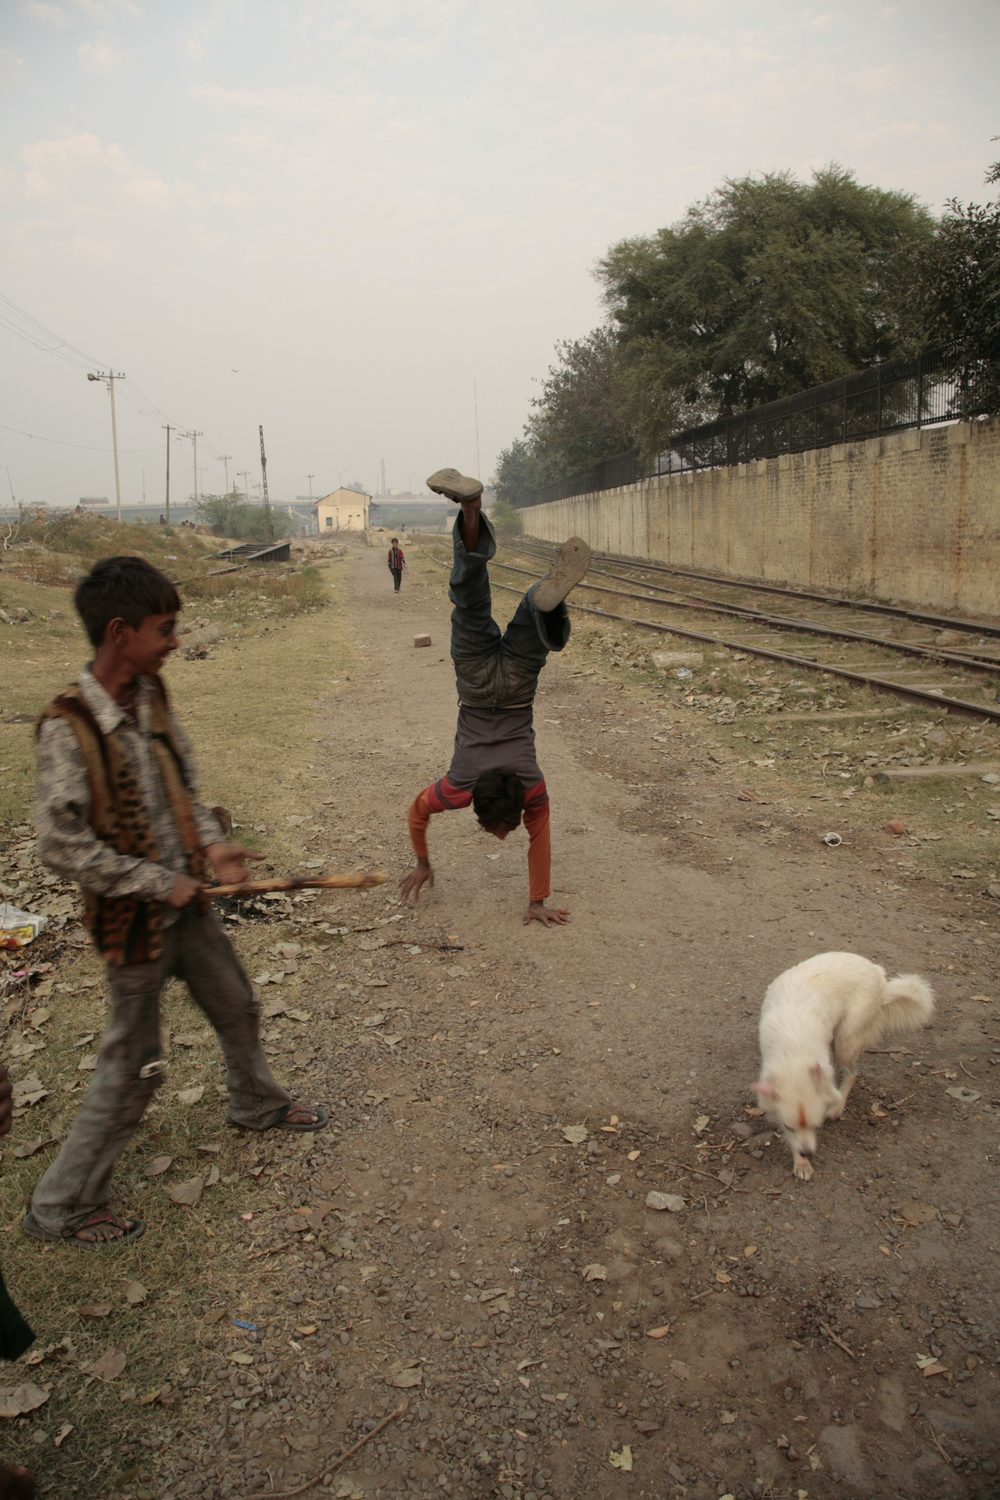 Delhi Railway Station, India - Photo courtesy of Dylan O'Donnell